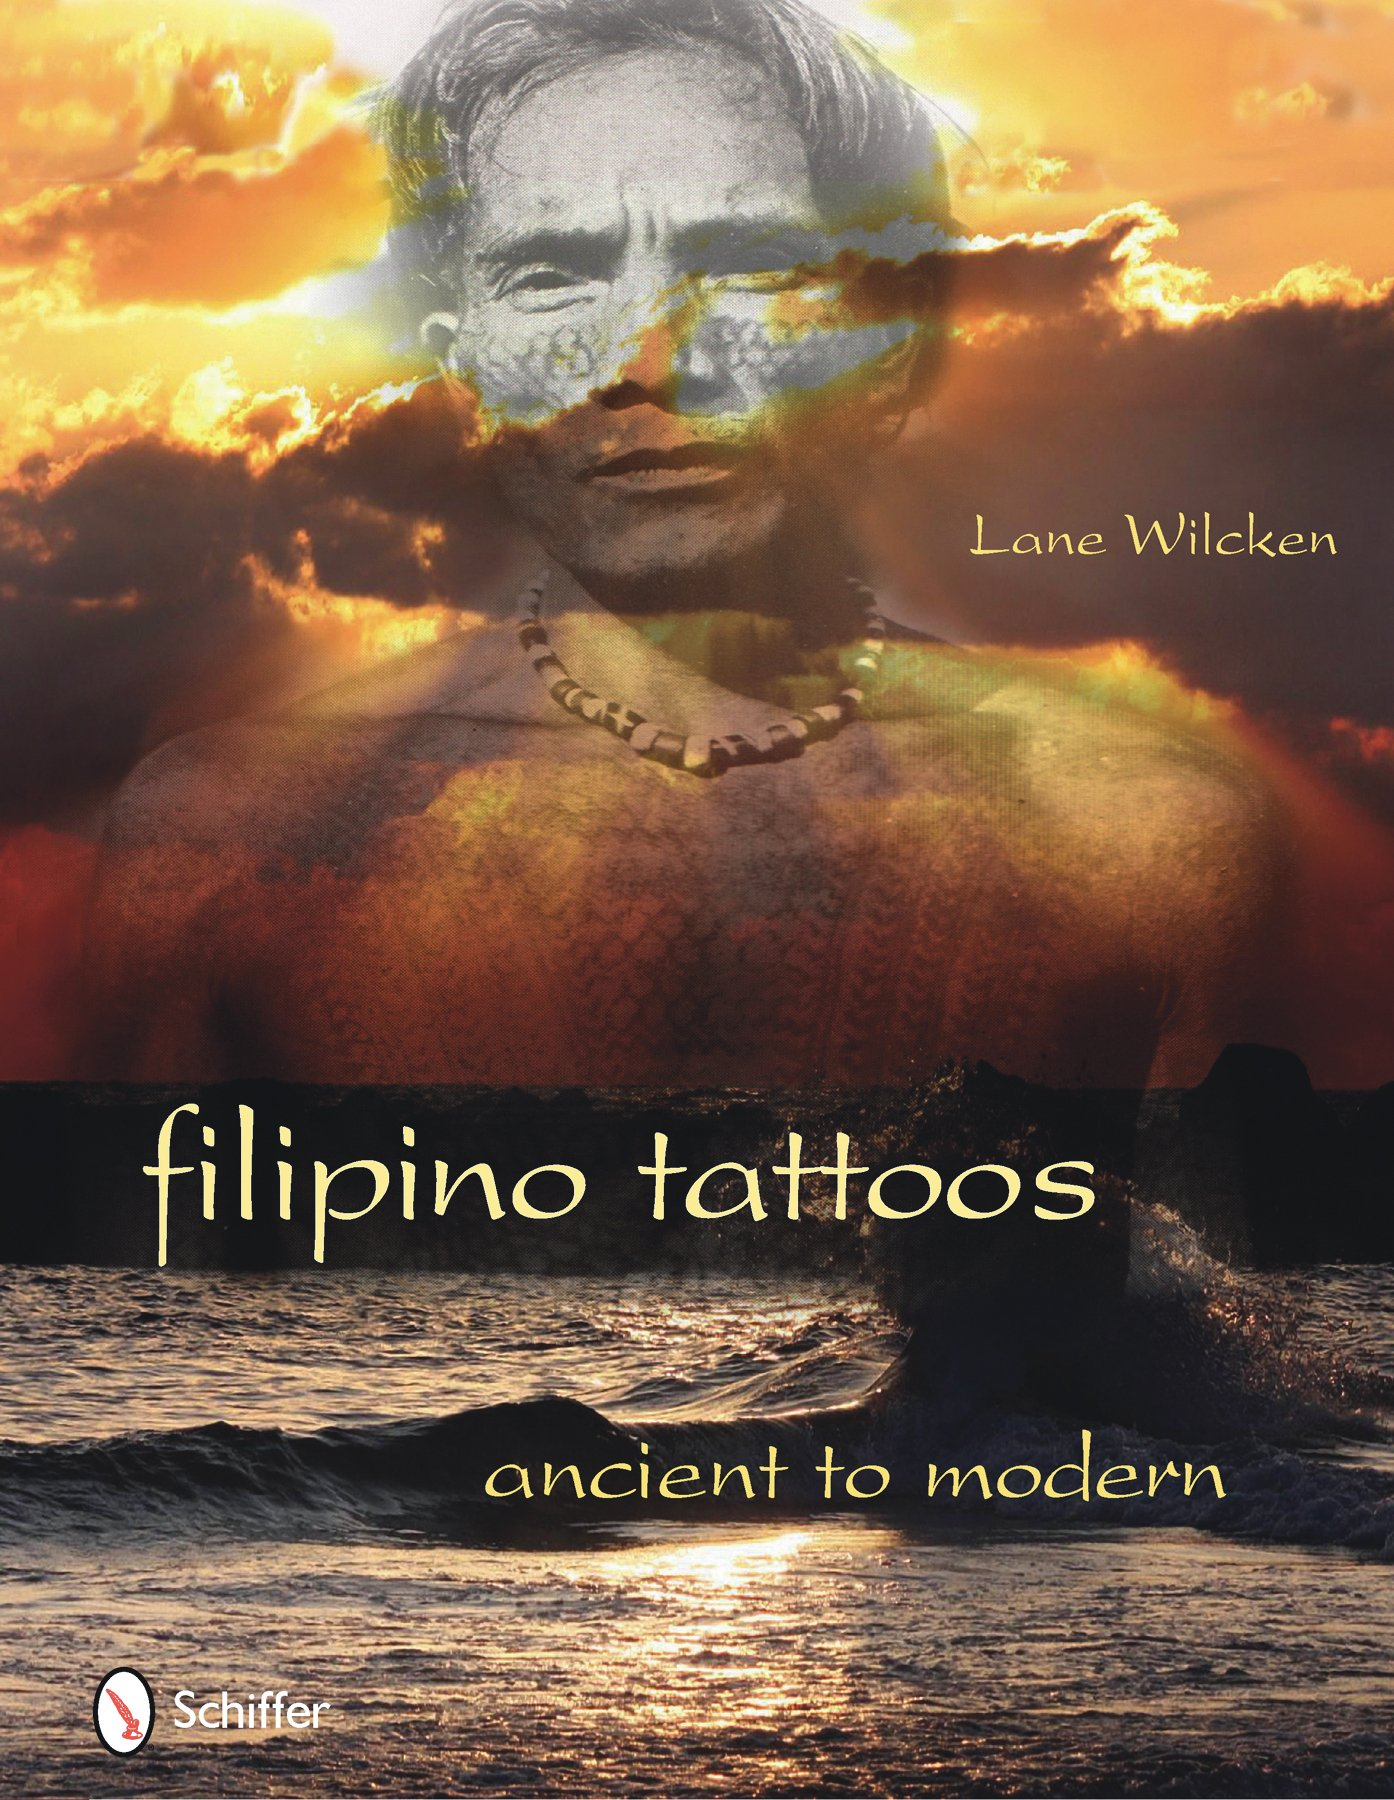 Filipino Tattoos Ancient to Modern, Lane Wilcken